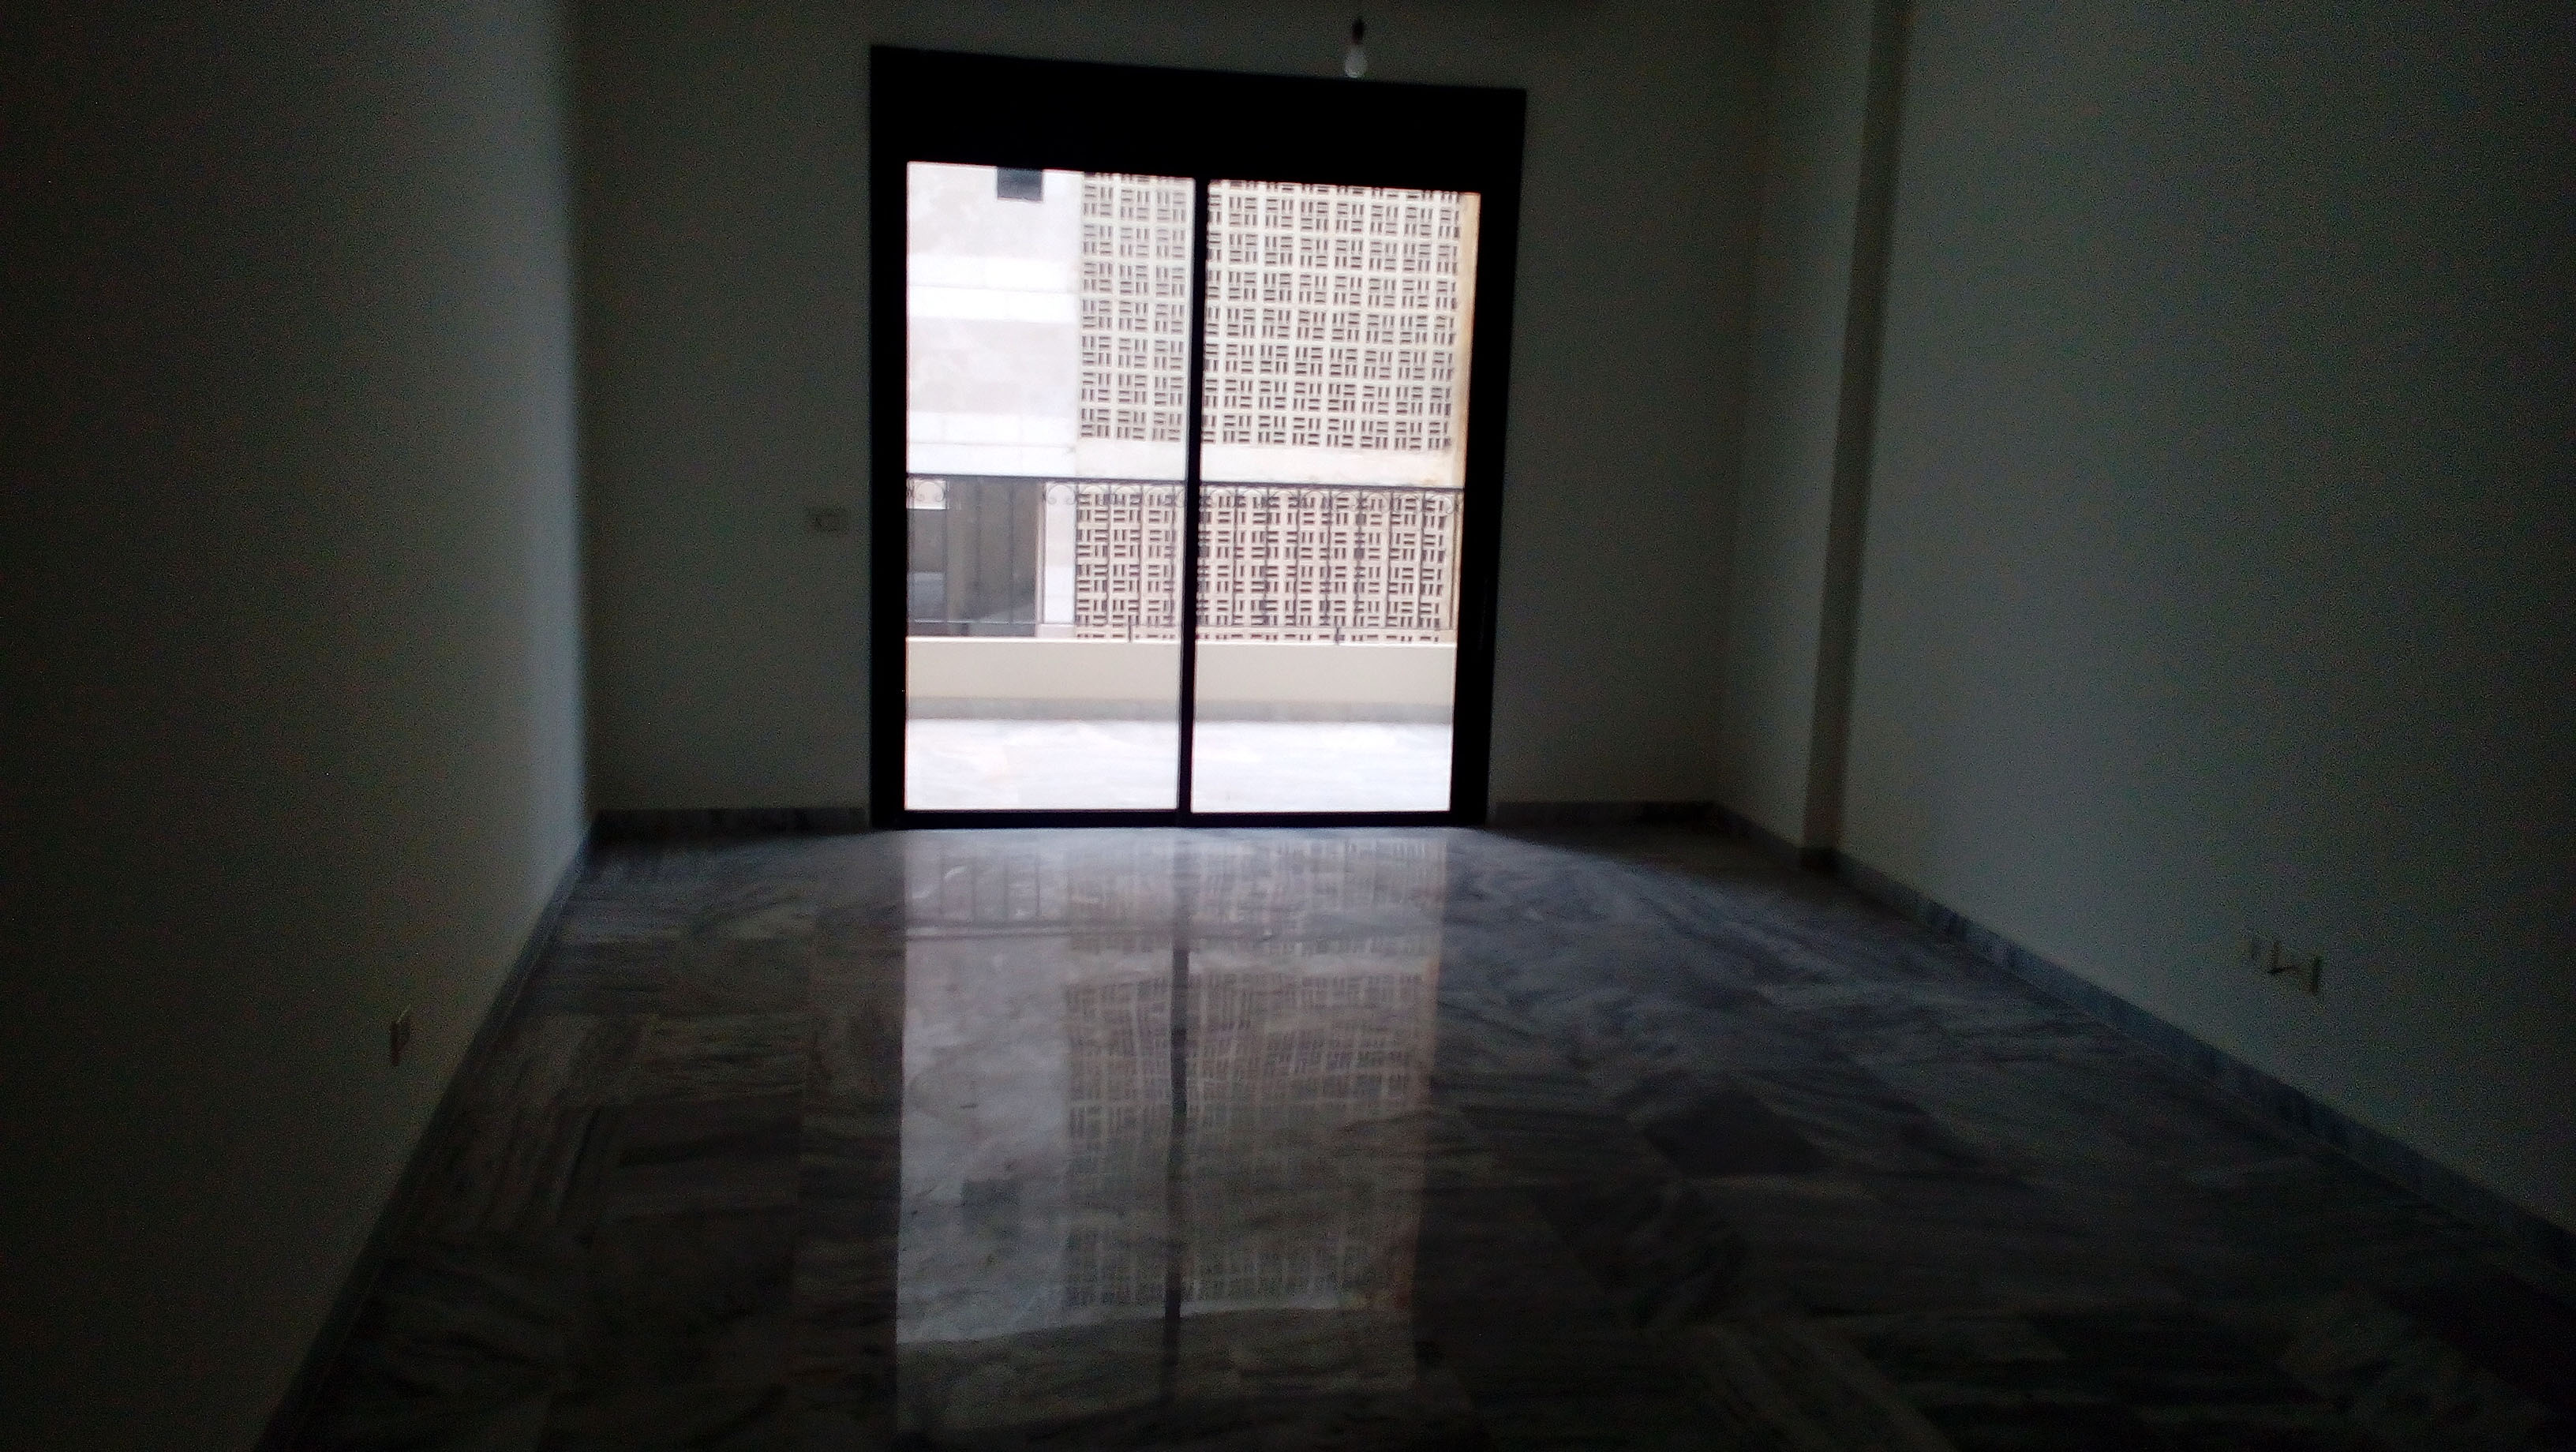 2-Bedroom Apartment for sale in Mansourieh